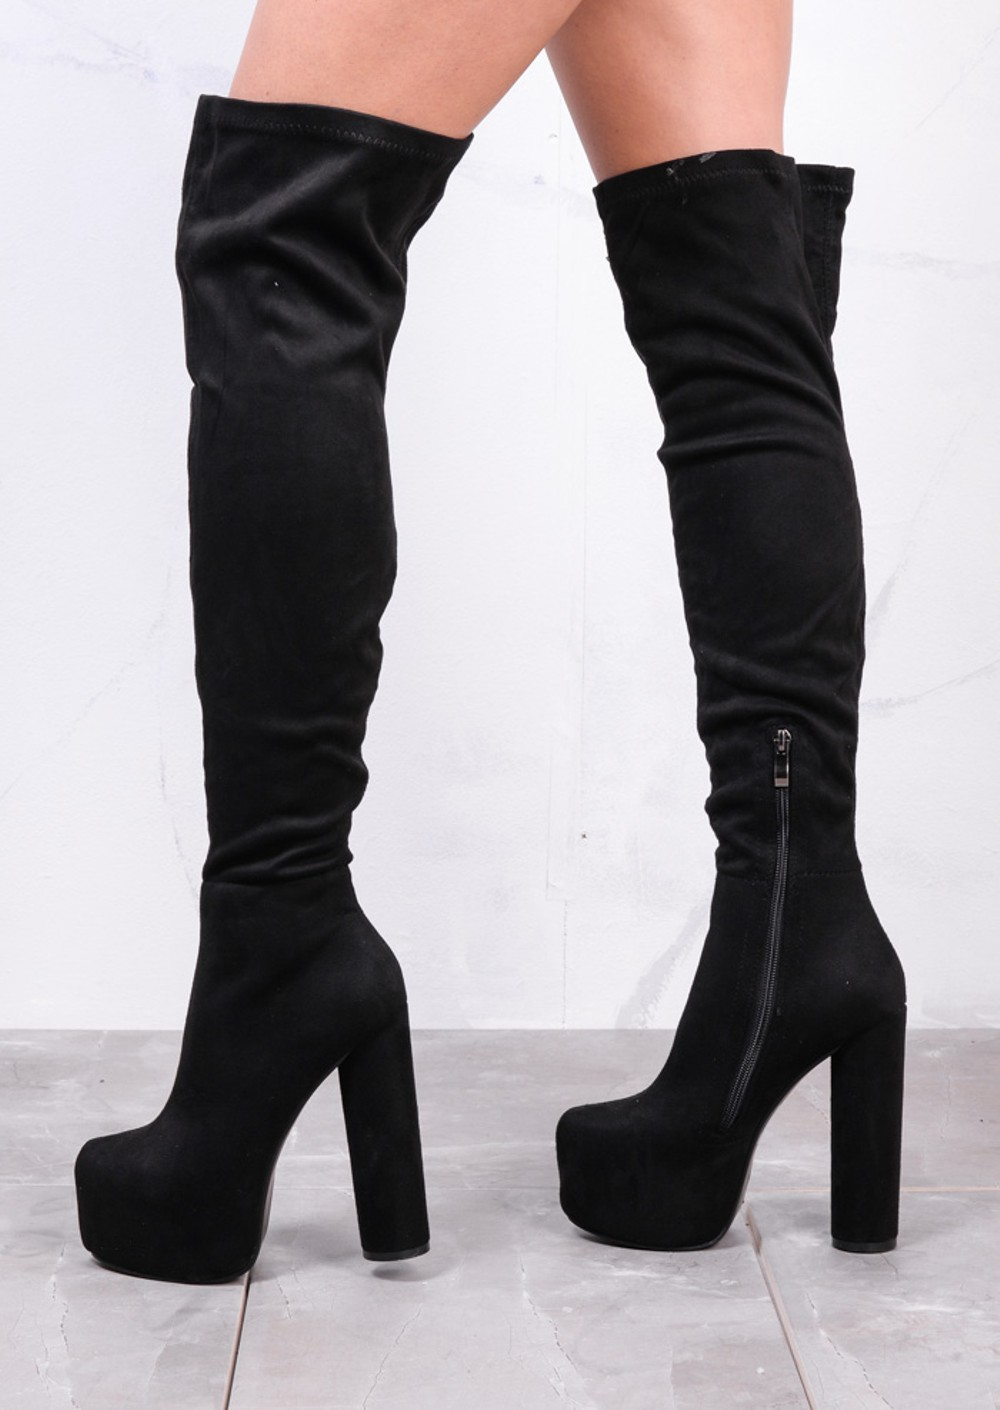 Shop our wide range of knee high boots at Debenhams in a variety of colours and styles. Menu Over the knee boots (21) Shoe boots (34) Lace up boots () Walking Extra wide fit black bow wedge long boots Save. Was £ Now £ Joe Browns Black 'Stylish Signature' high block heel knee high boots.